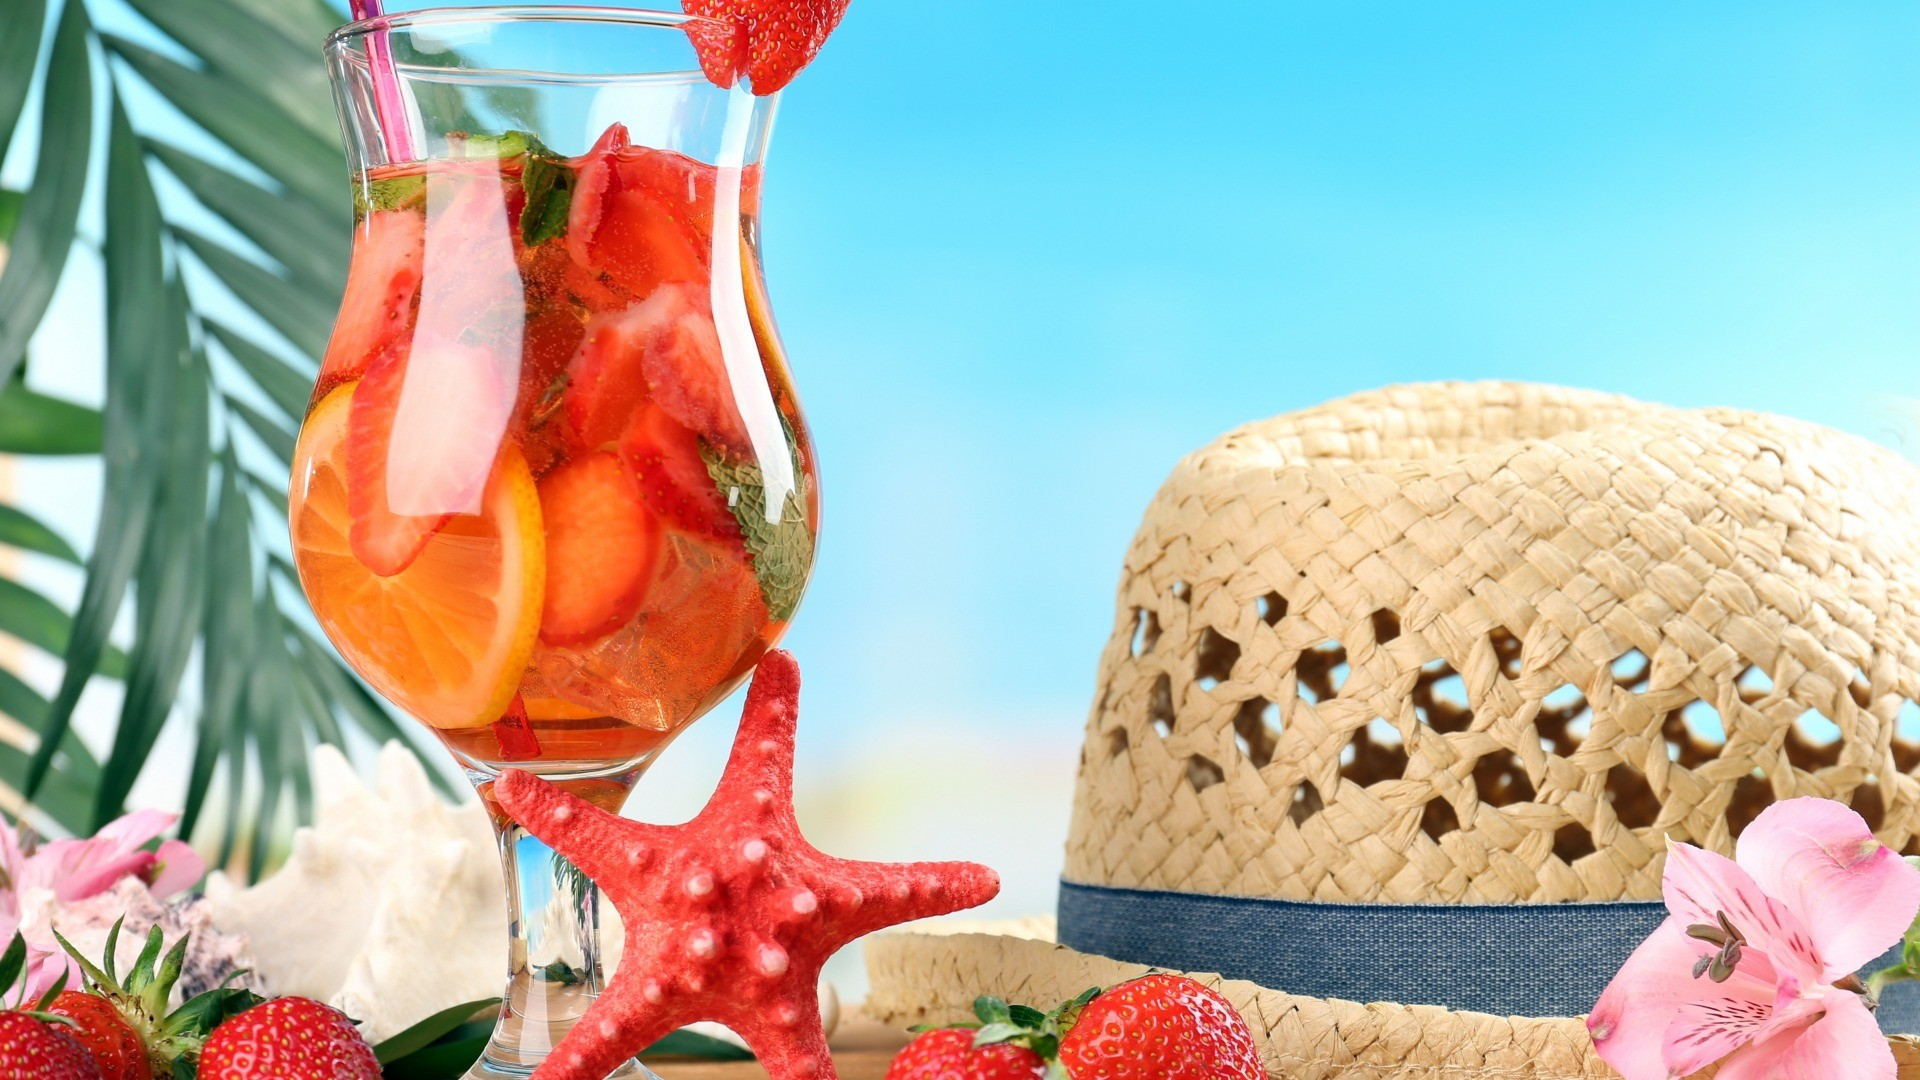 1920x1080 ... Enjoy summer holidays 2016 hat flower starfish cocktail strawberry,  beach beautiful wallpaper free download for